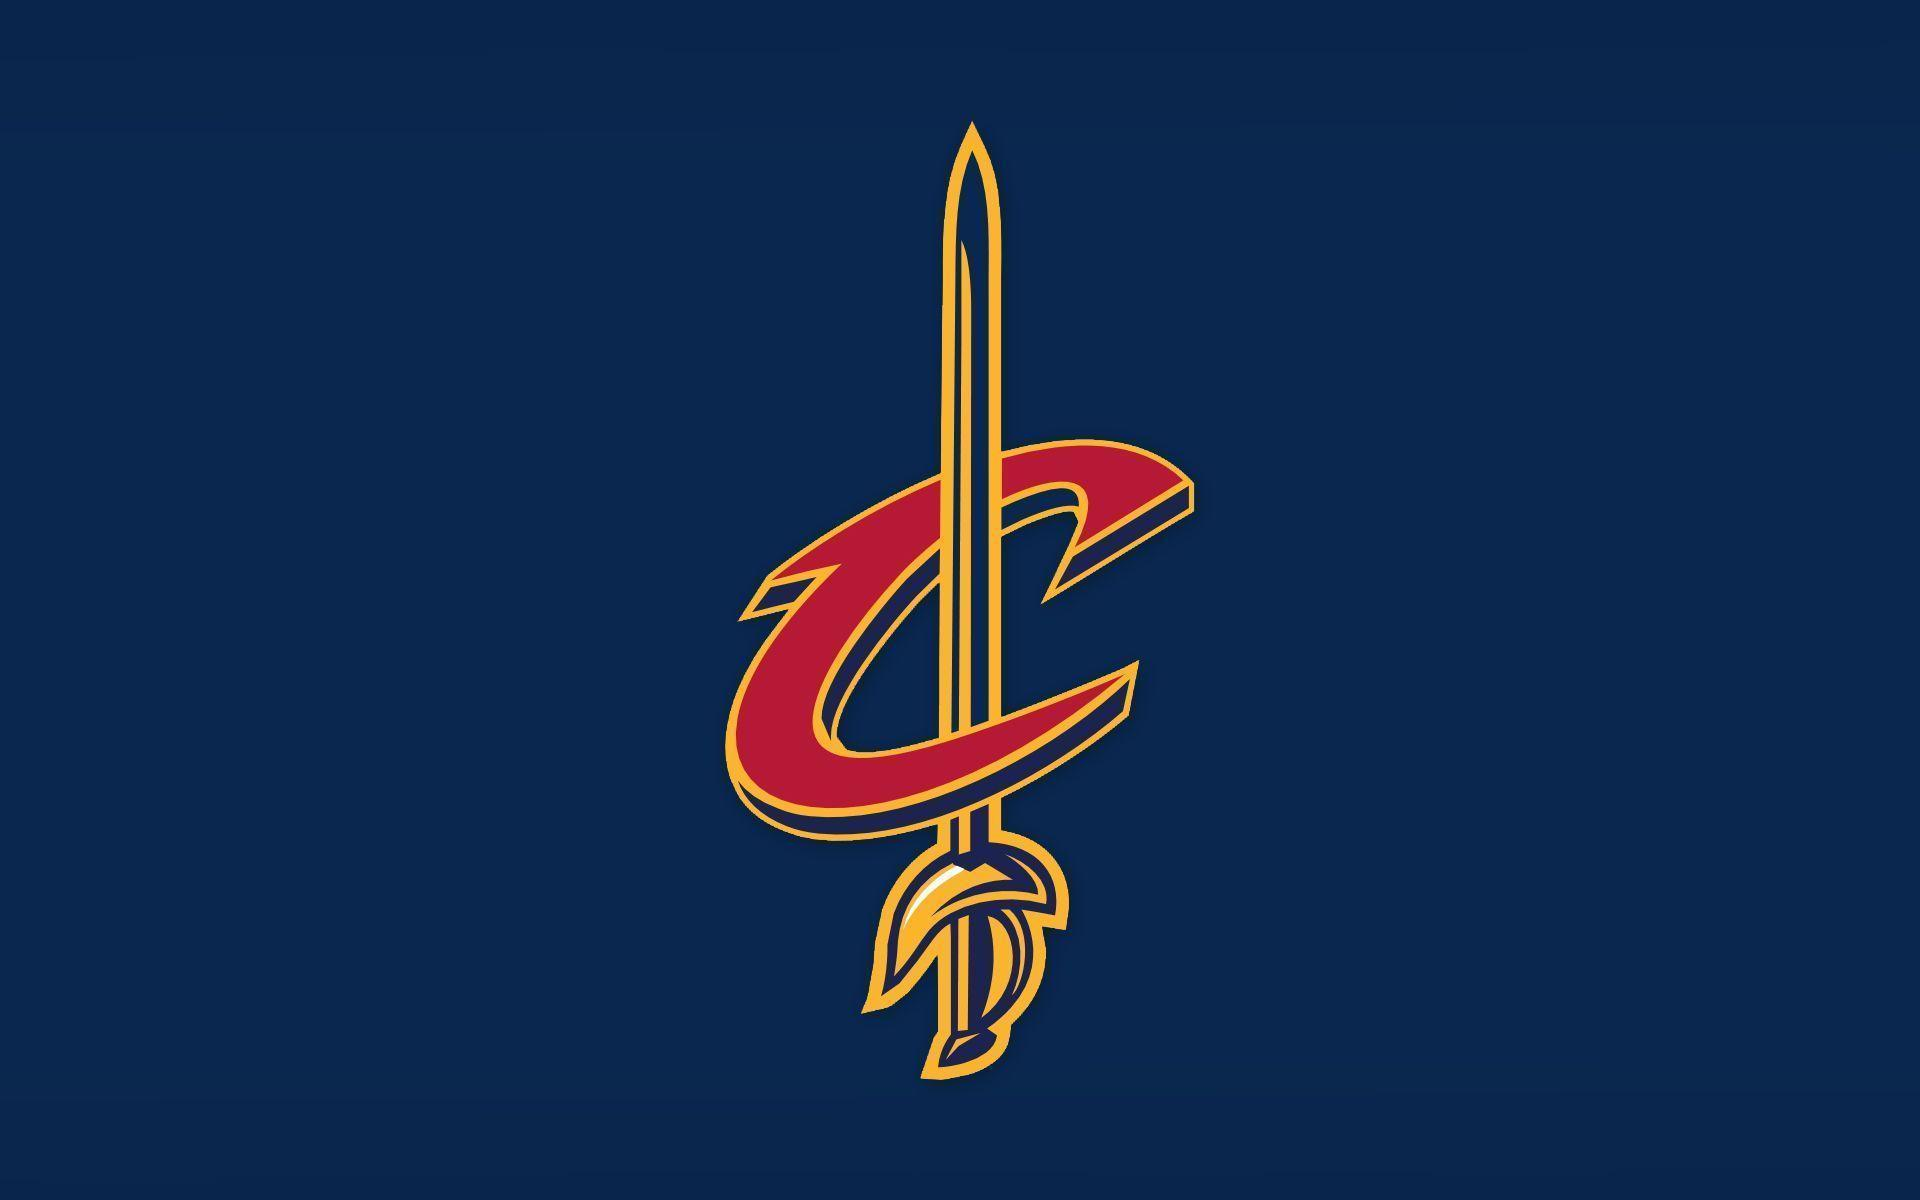 Cleveland Cavaliers Wallpapers Wallpaper Cave HD Wallpapers Download Free Images Wallpaper [1000image.com]